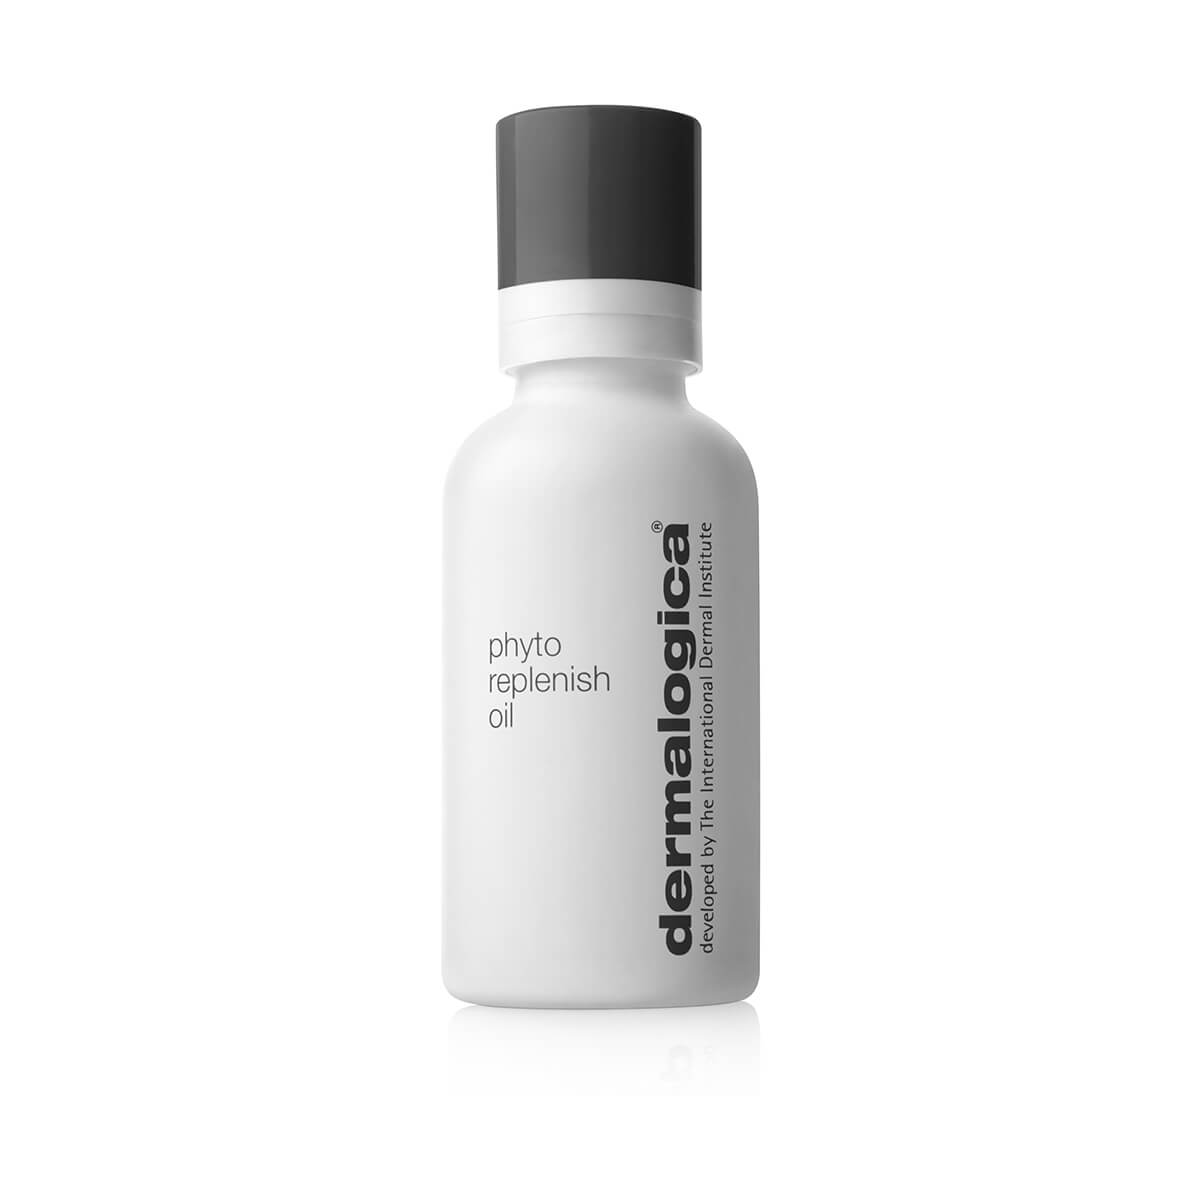 phyto replenish oil (30ml)